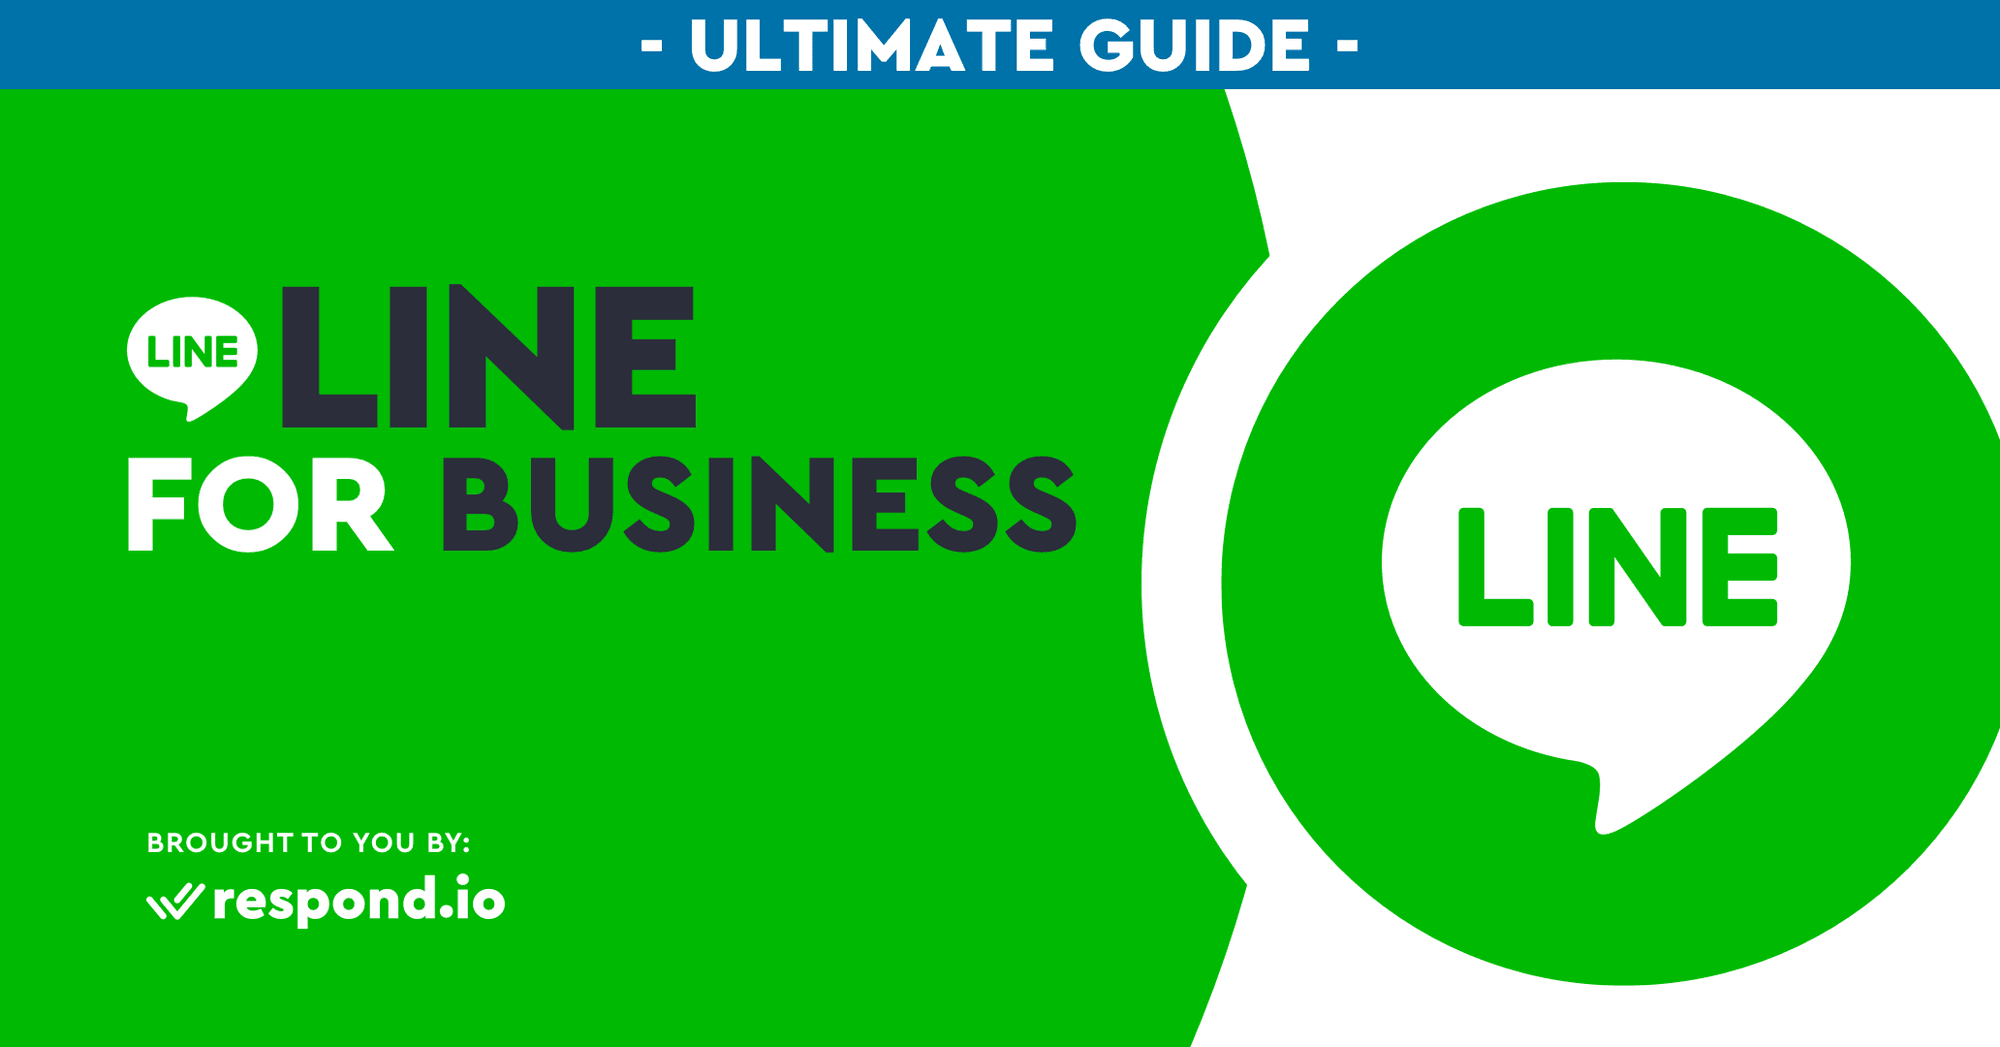 Ultimate Guide to LINE for Business (Aug 2020)